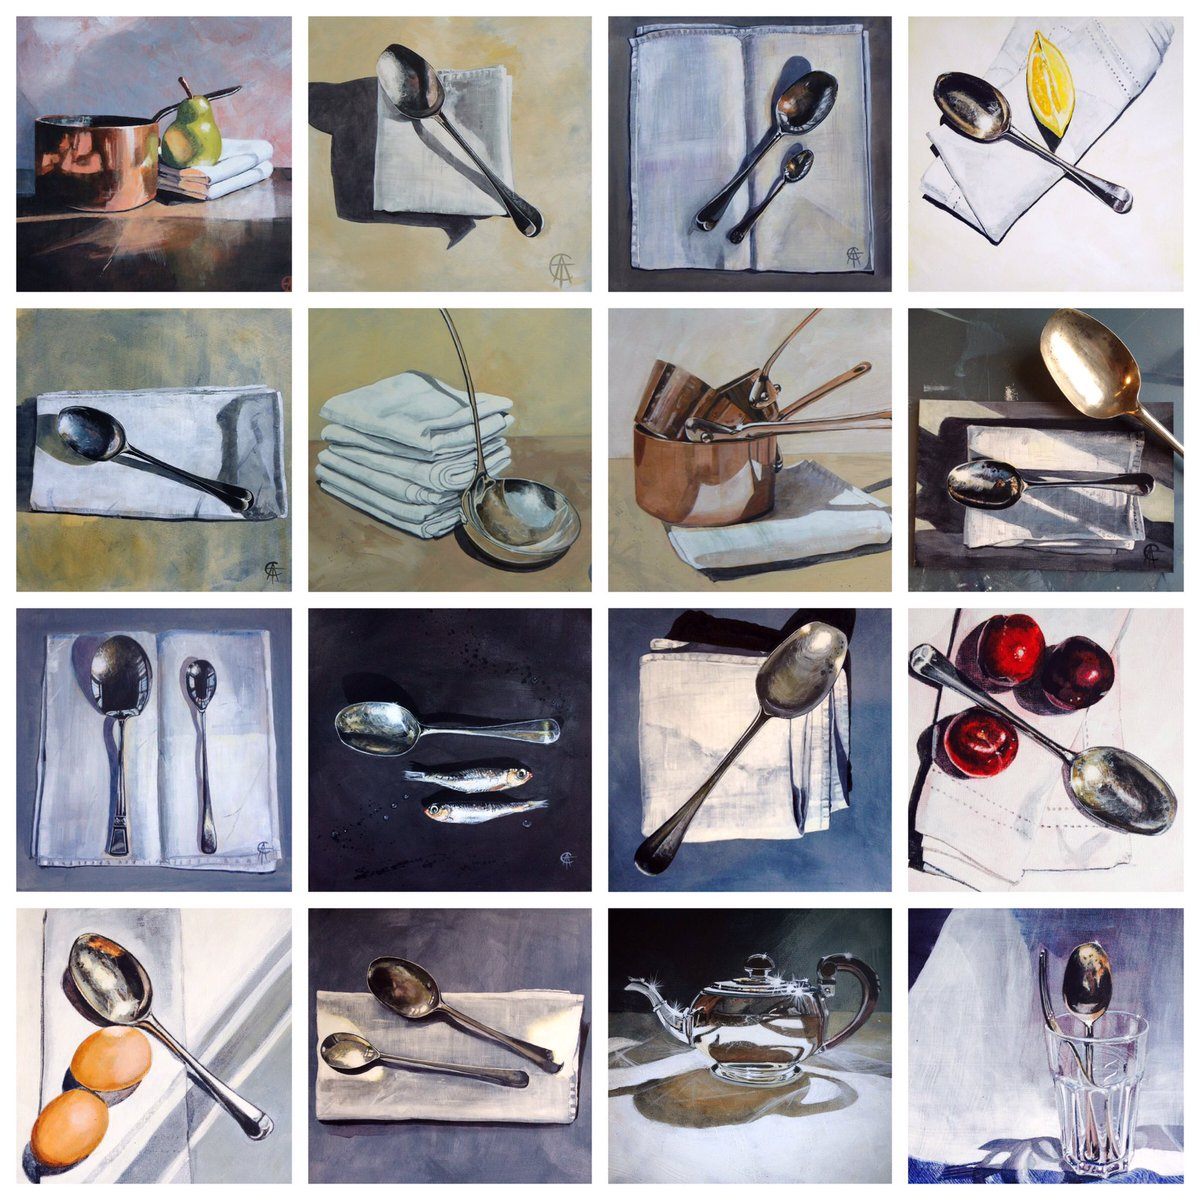 I really love painting metal! Look how many times I have painted my Grandma's old silver spoon! ... https://t.co/DnmeuVW254